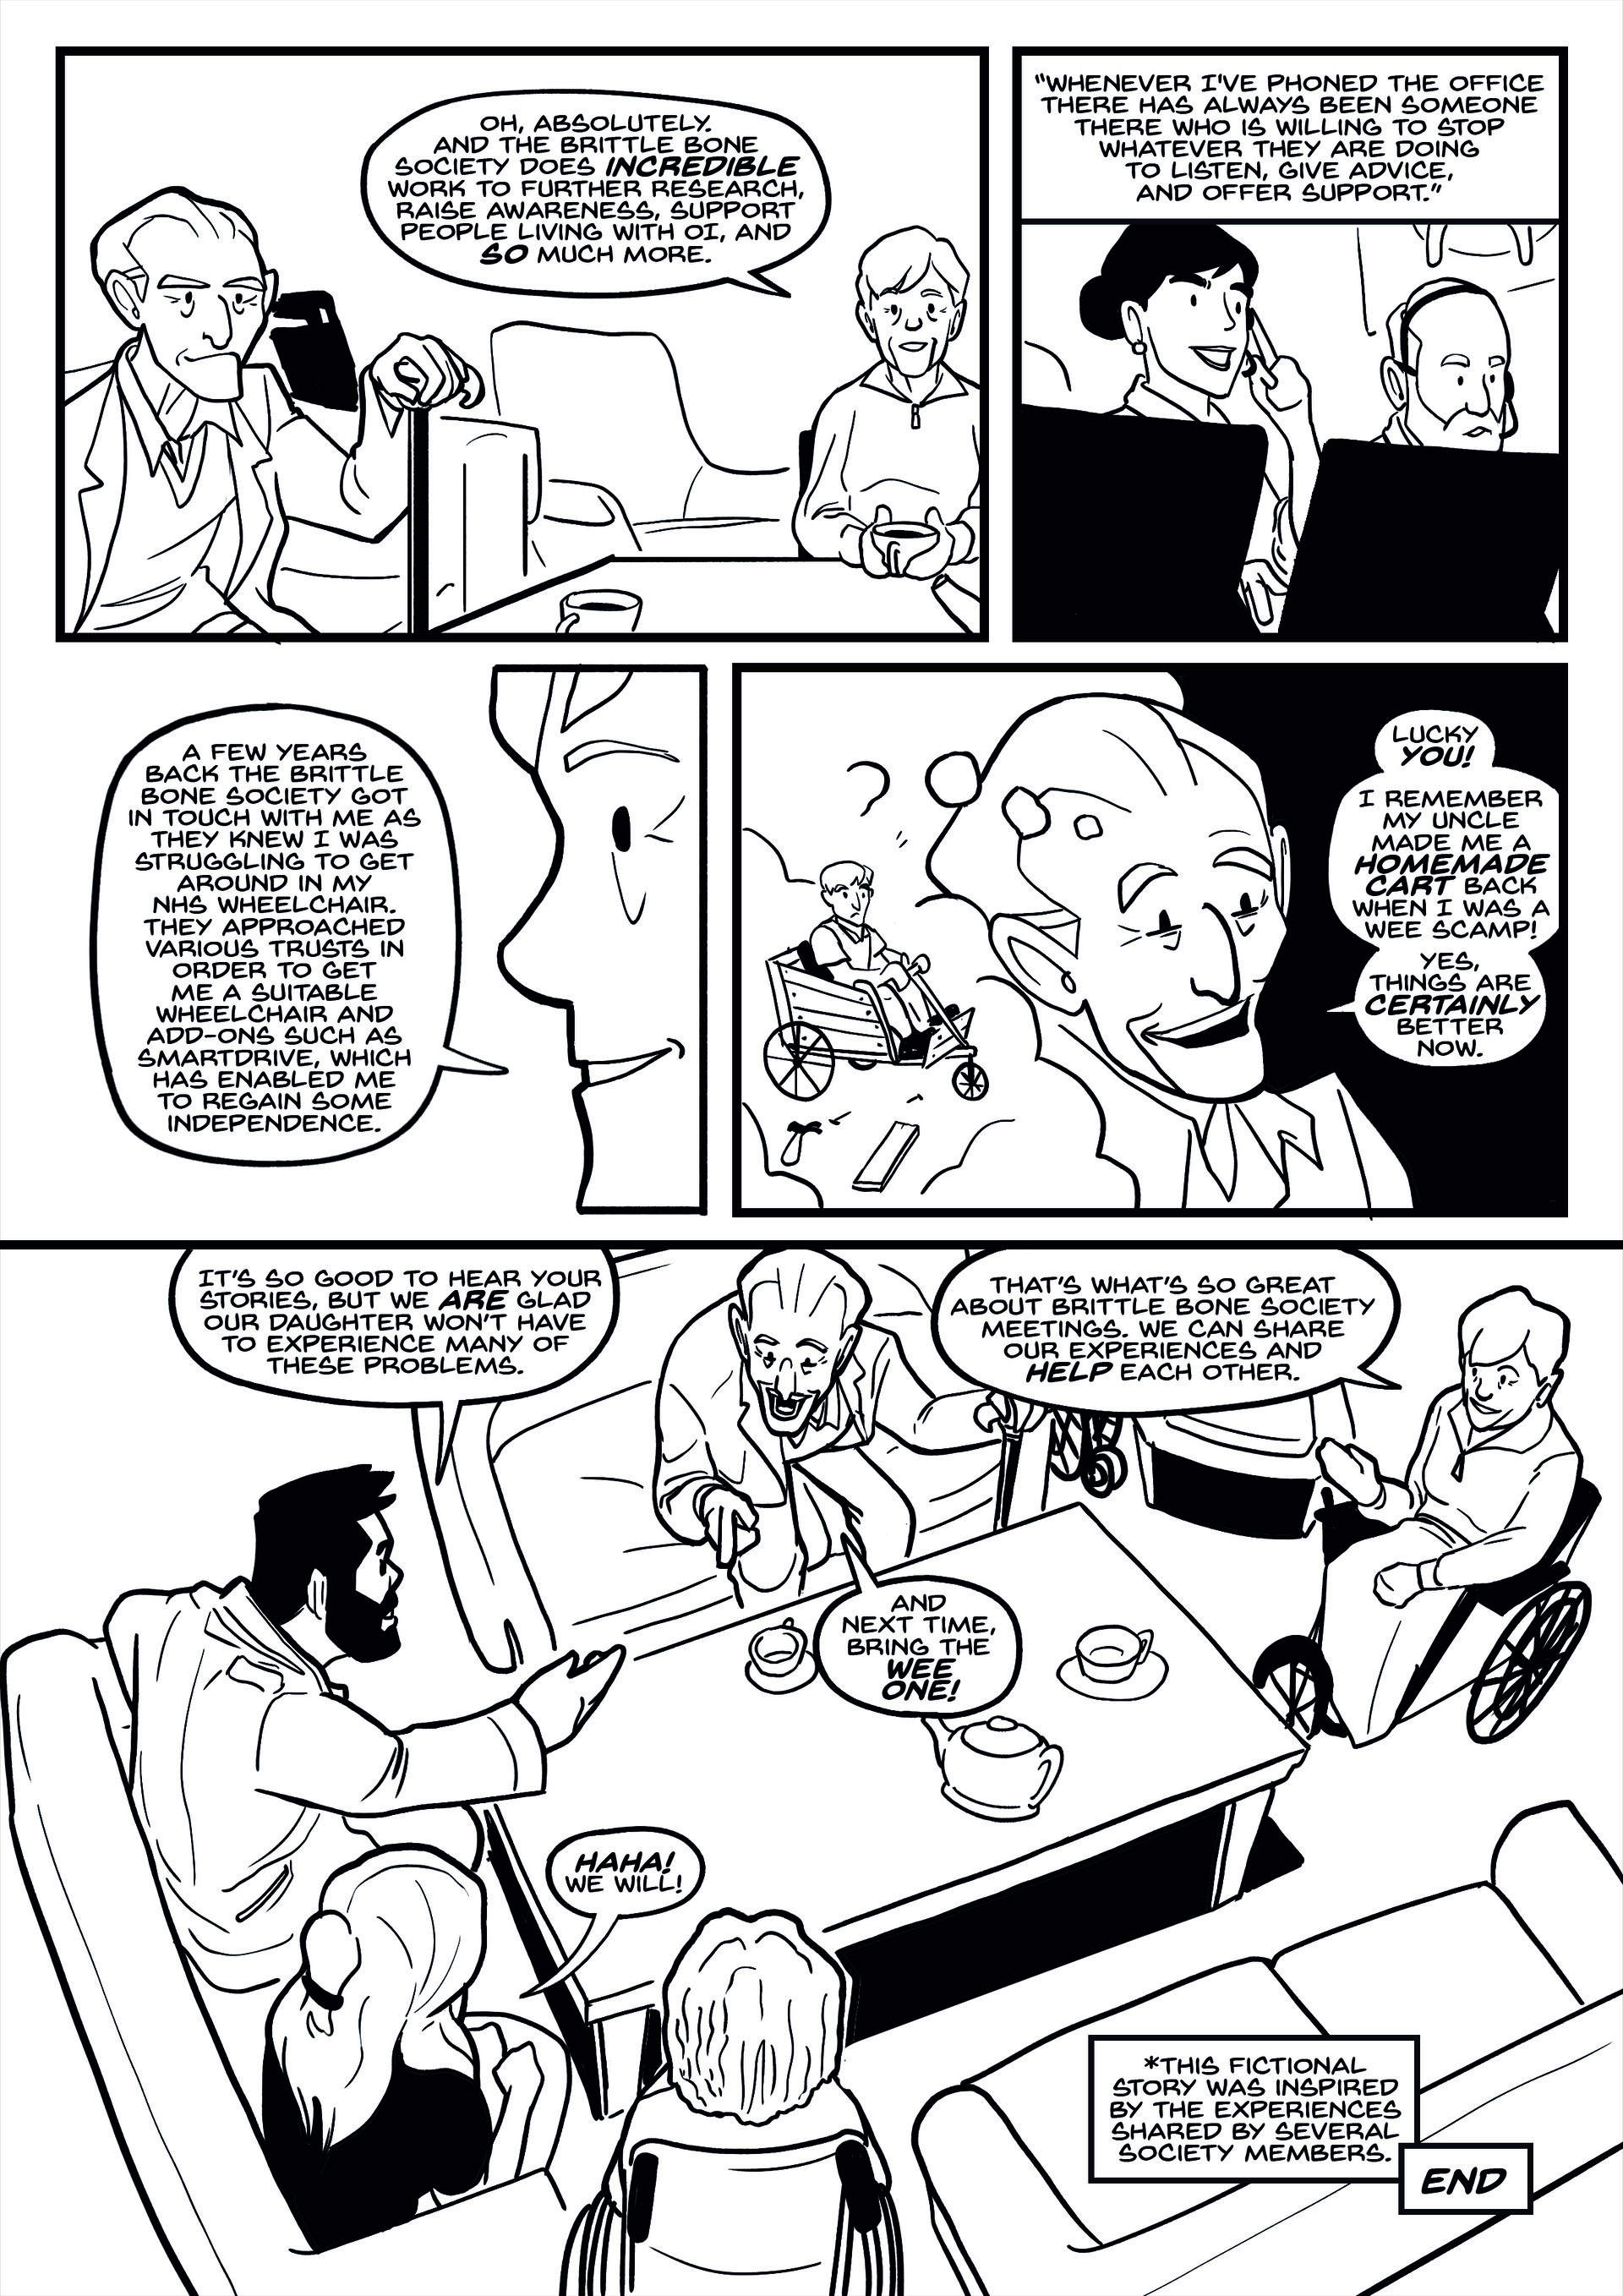 Elliot balson brittle bone society comic2 page3